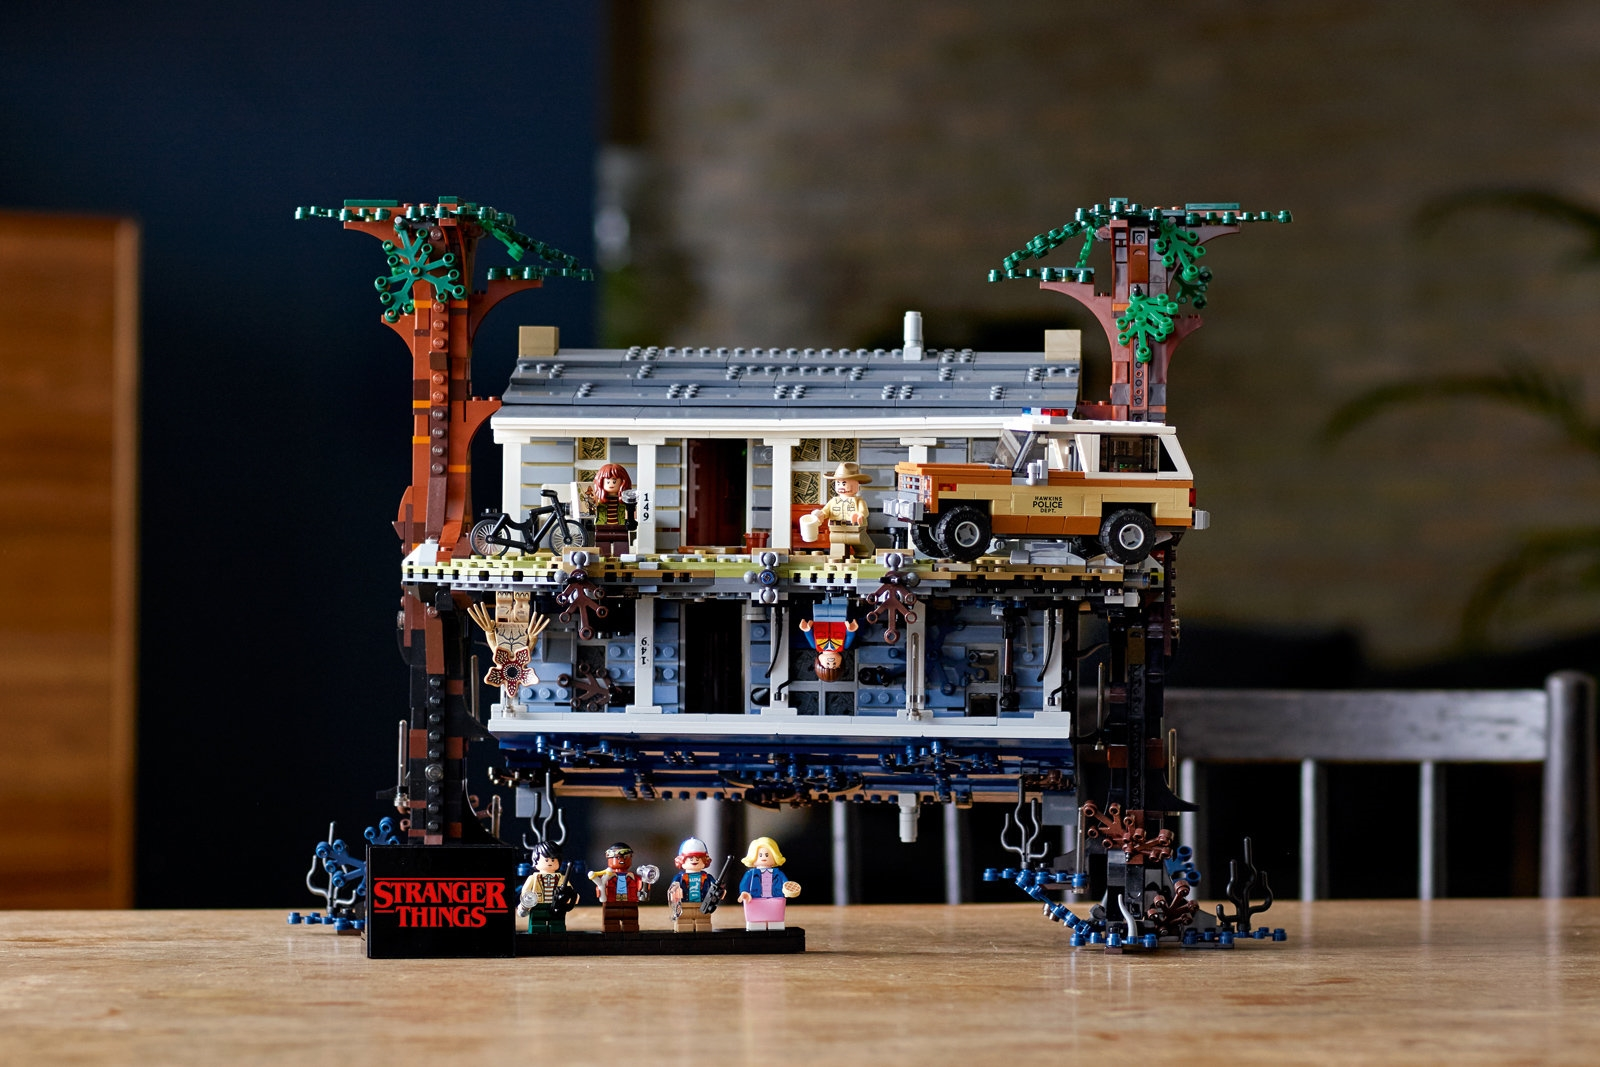 Lego dives into the Upside Down with a 'Stranger Things' play set | DeviceDaily.com